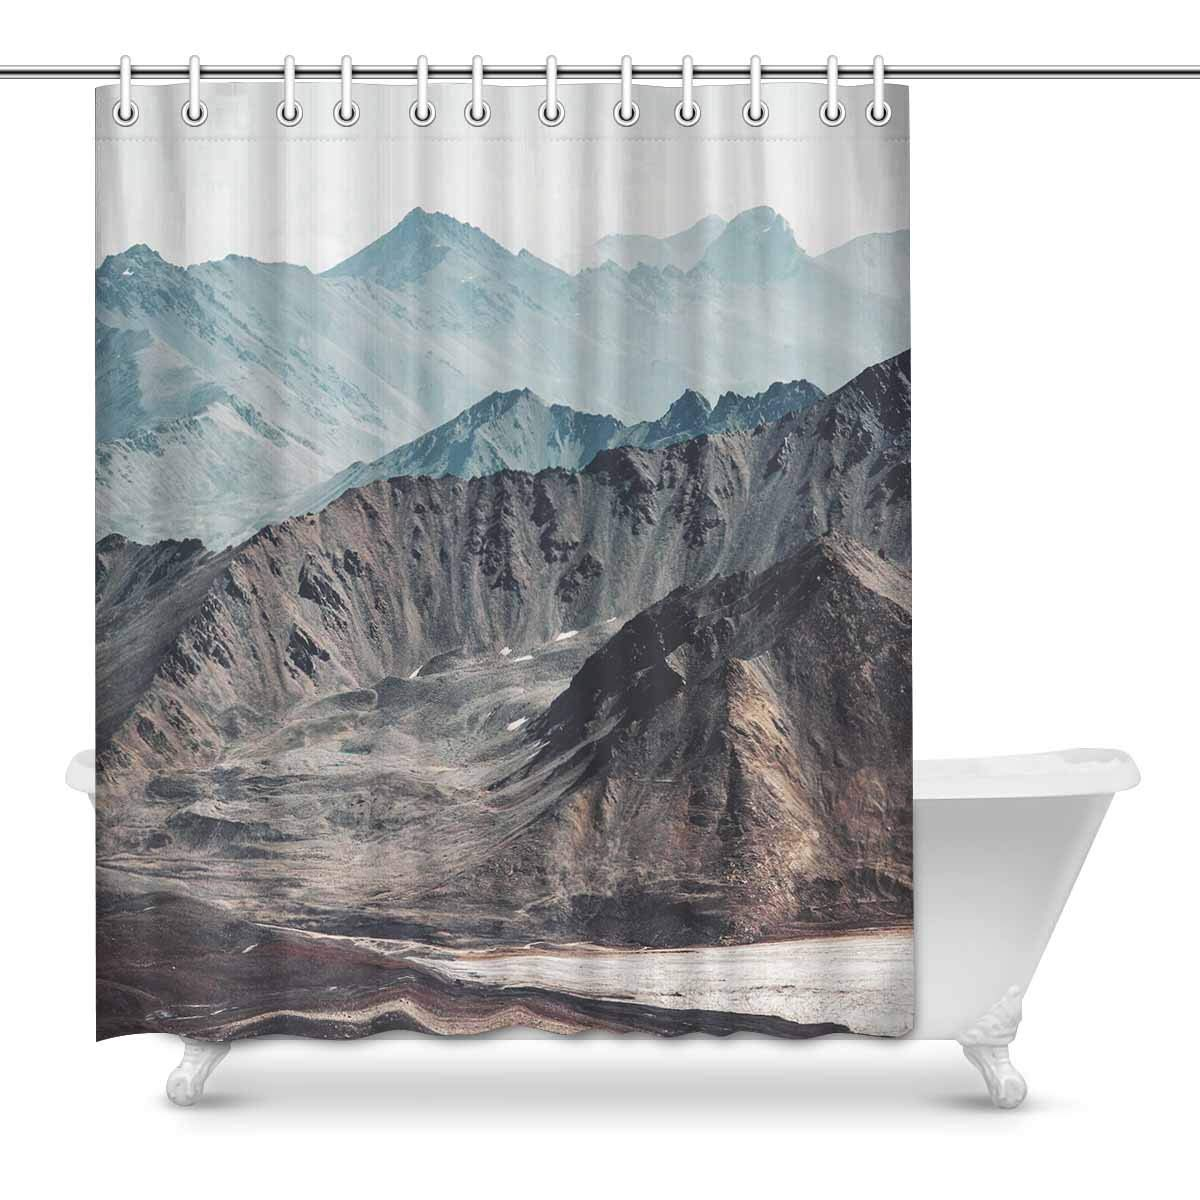 Gckg New York City Freedom Shower Curtain American Flag Grunge Polyester Fabric Shower Curtain Bathroom Sets 60x72 Inches